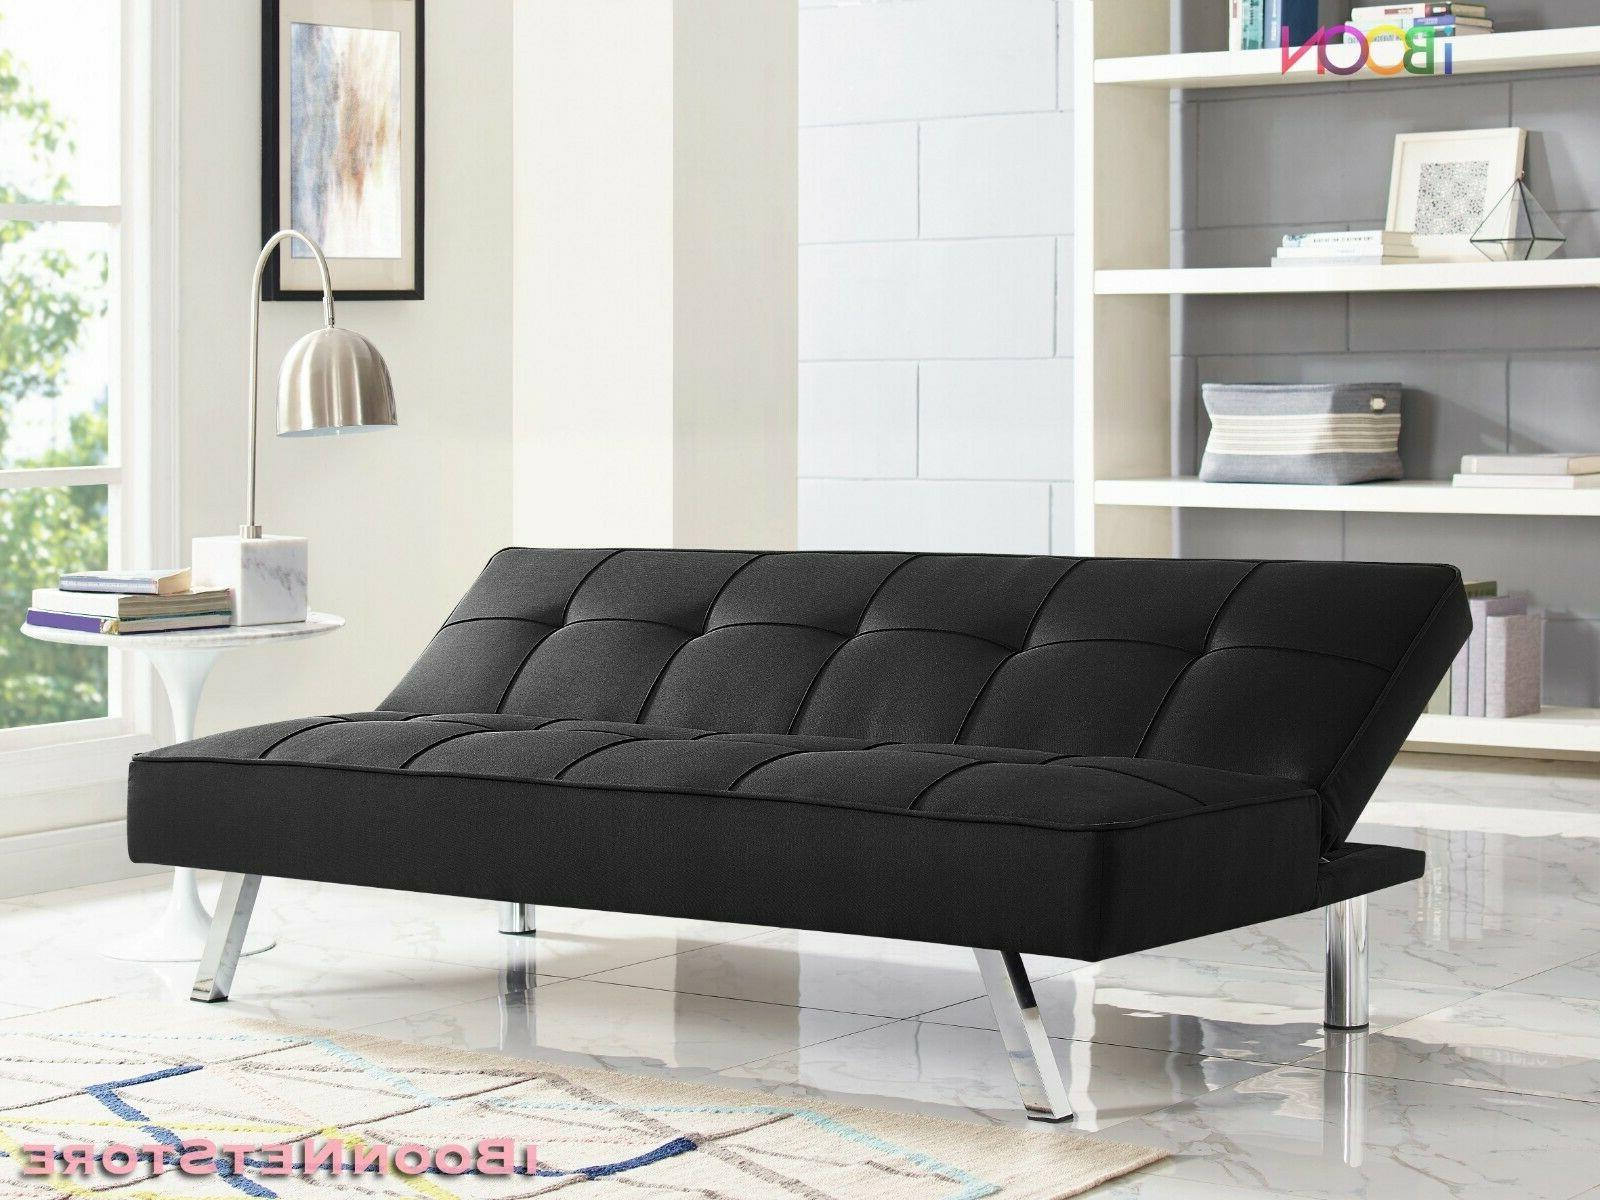 Futon Convertible Couch 3 Seat Foldable Size With Mattress